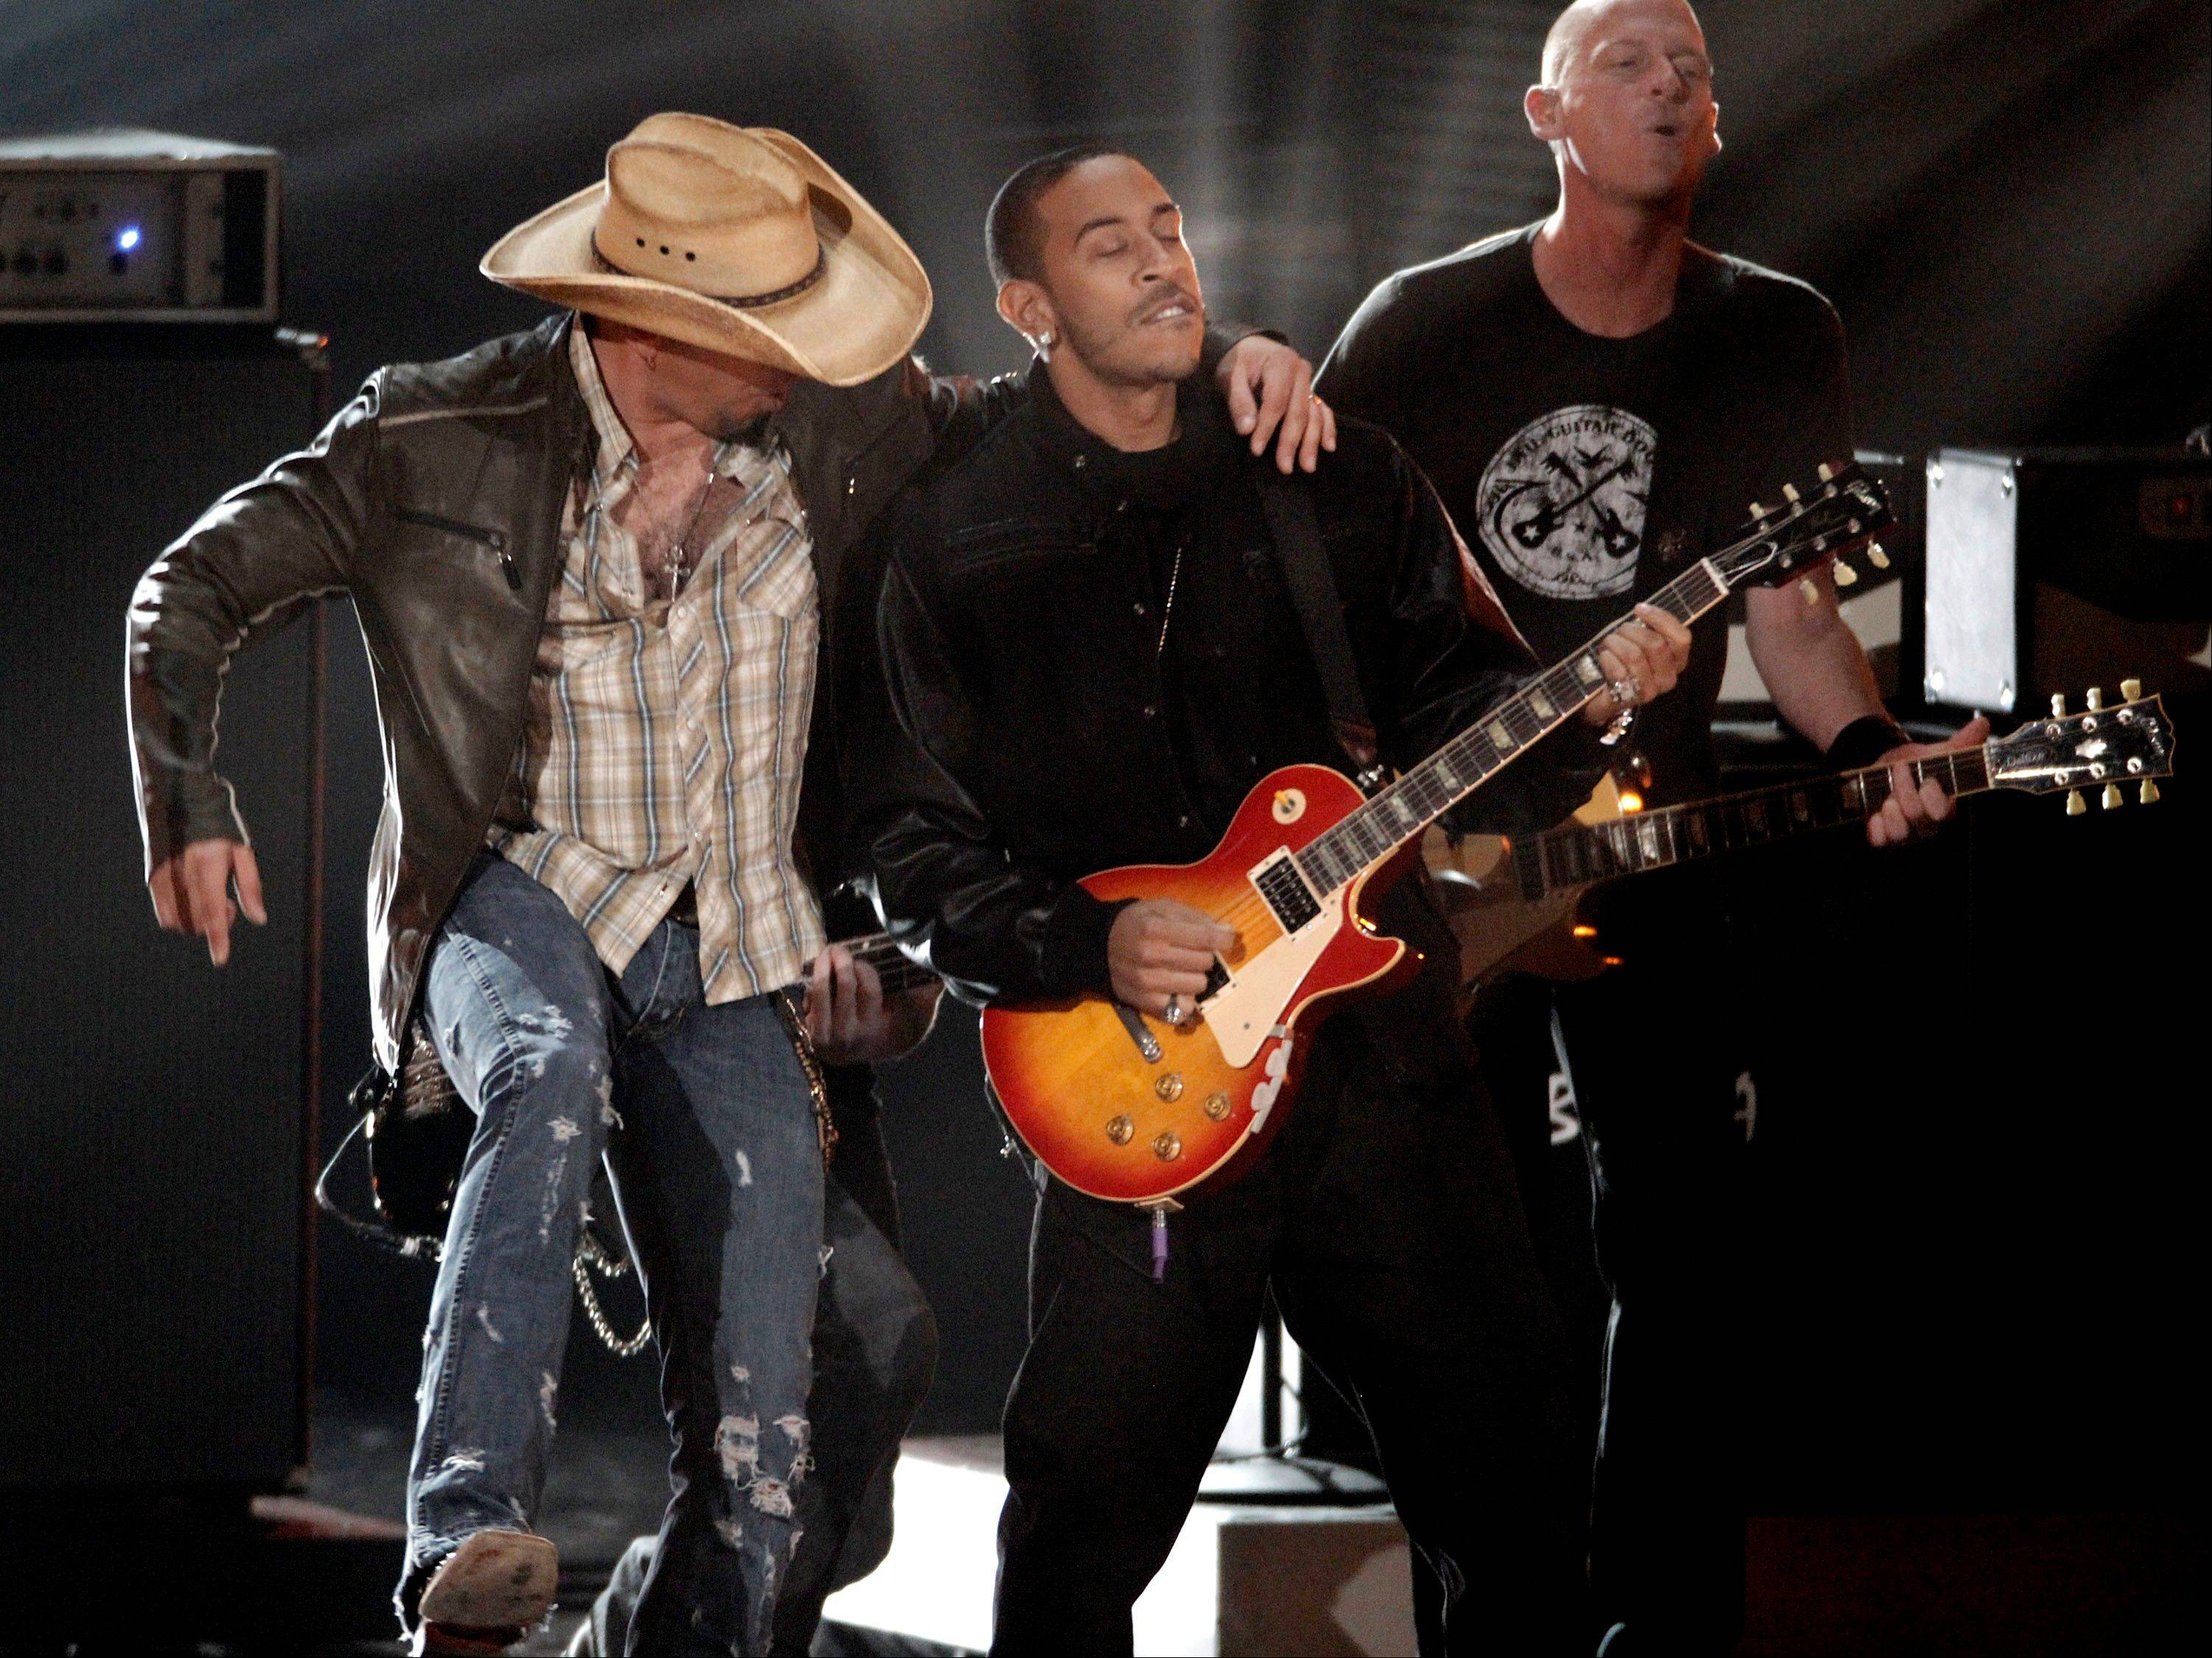 Jason Aldean, left, and Ludacris perform Wednesday at the Grammy Nominations Concert in Los Angeles.